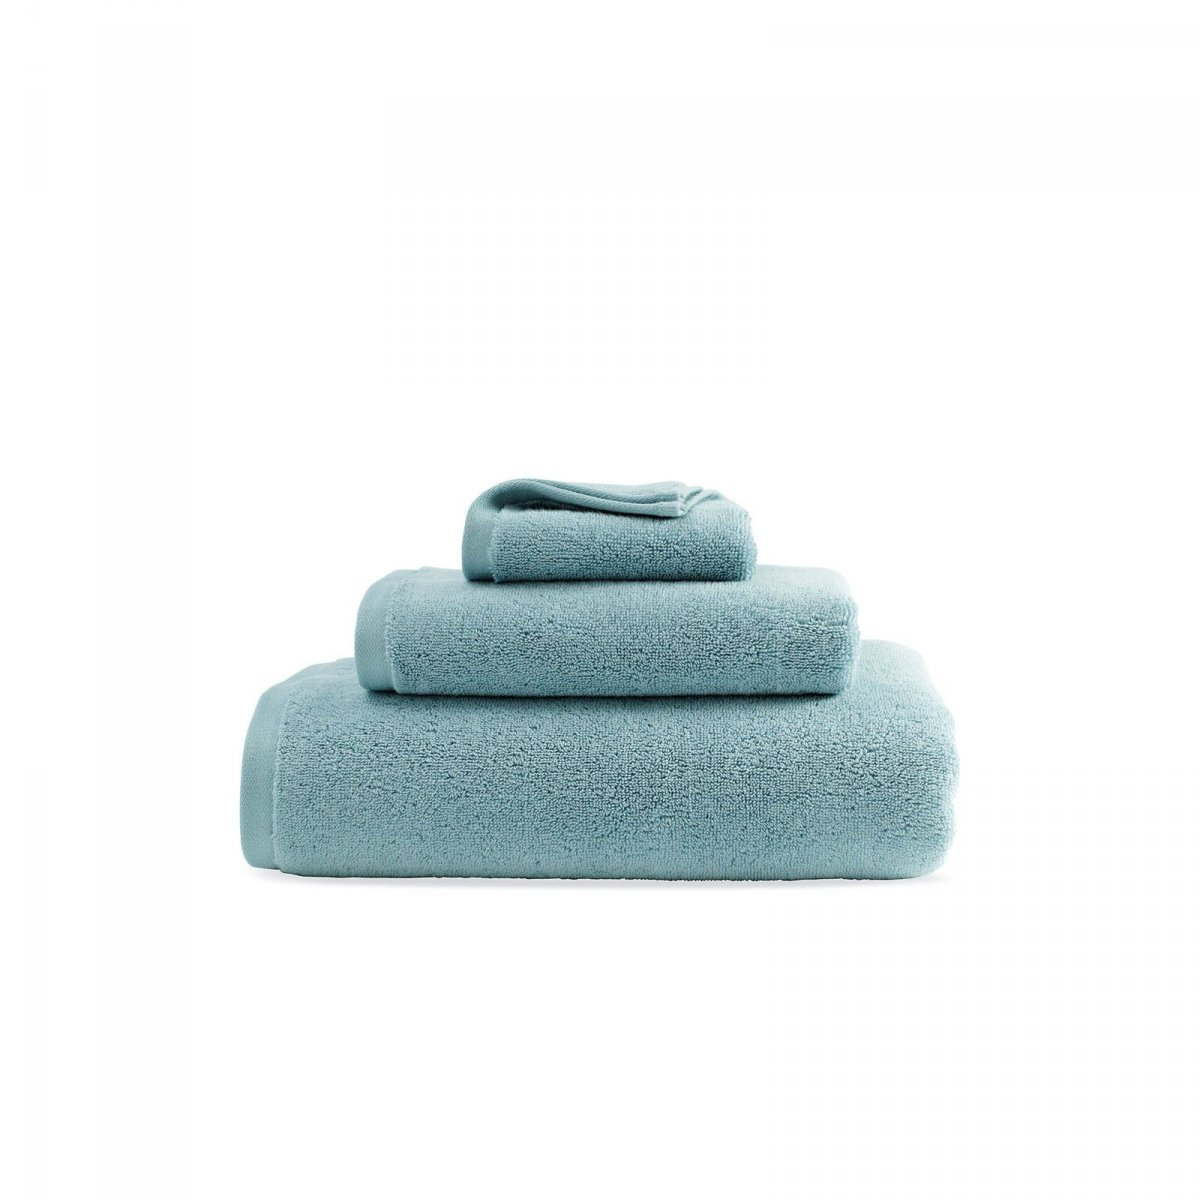 DWR Aerocotton Towels, cyan.